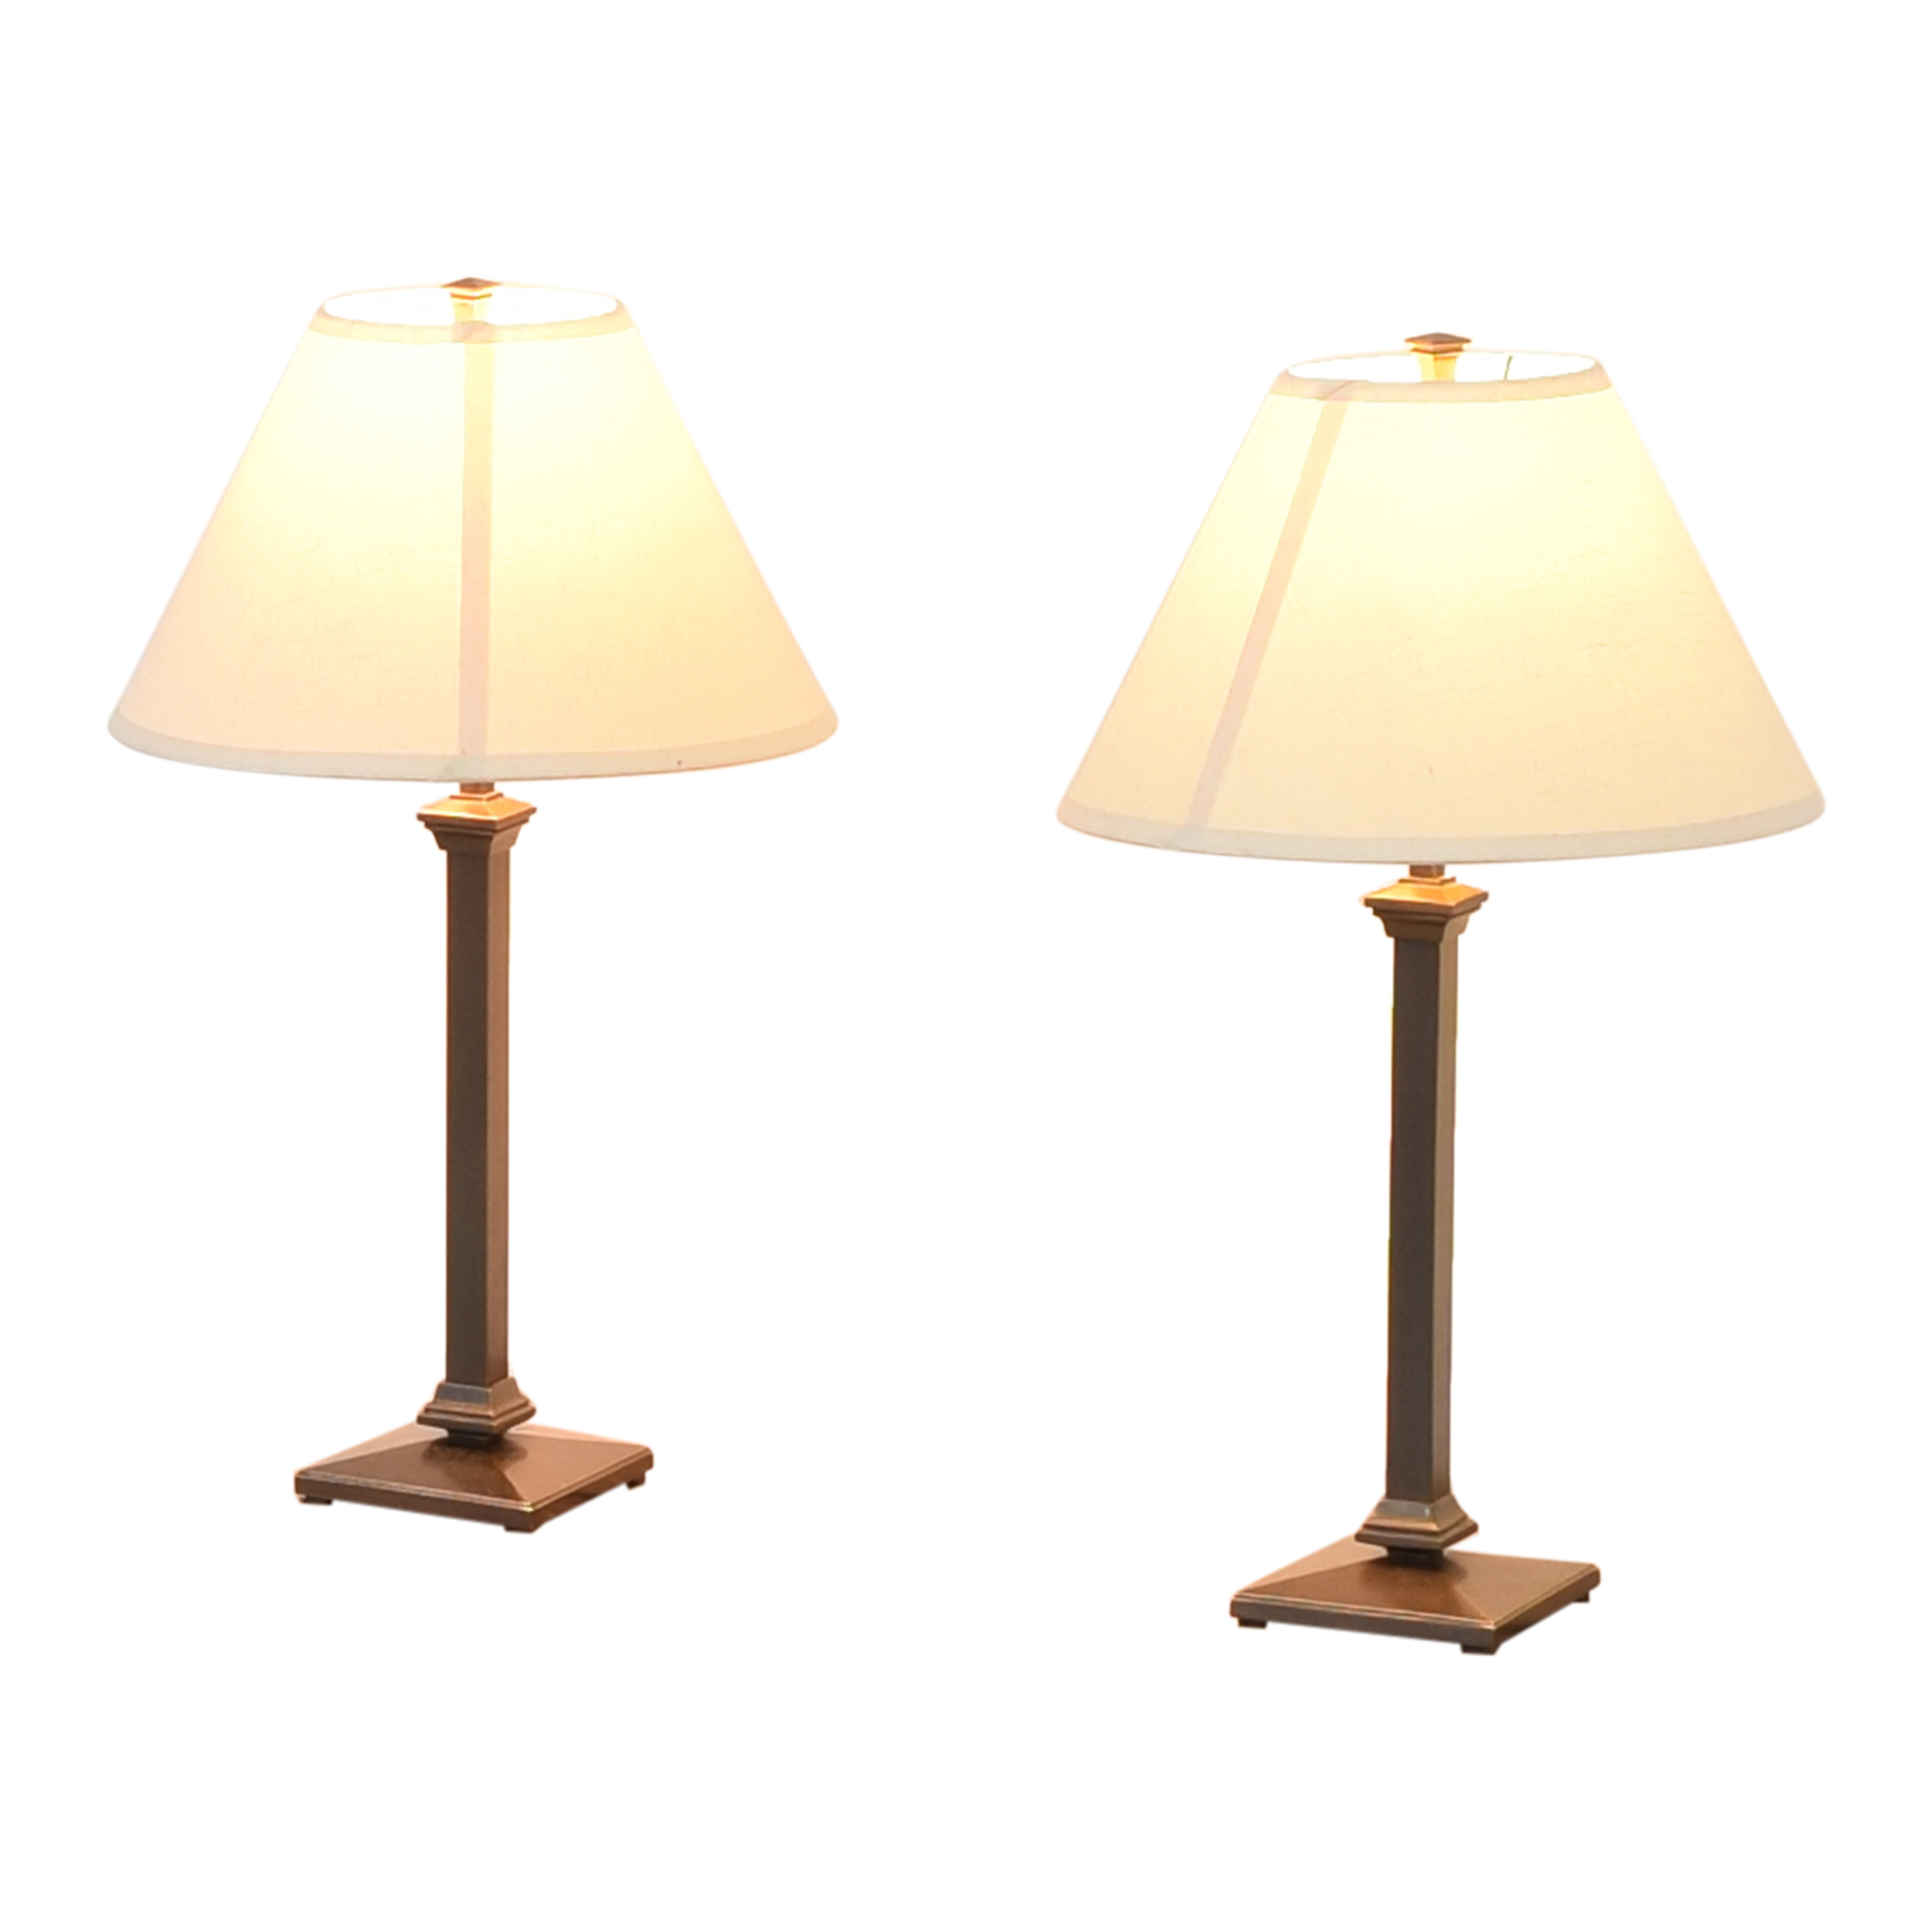 Restoration Hardware Restoration Hardware Small Table Lamps ma